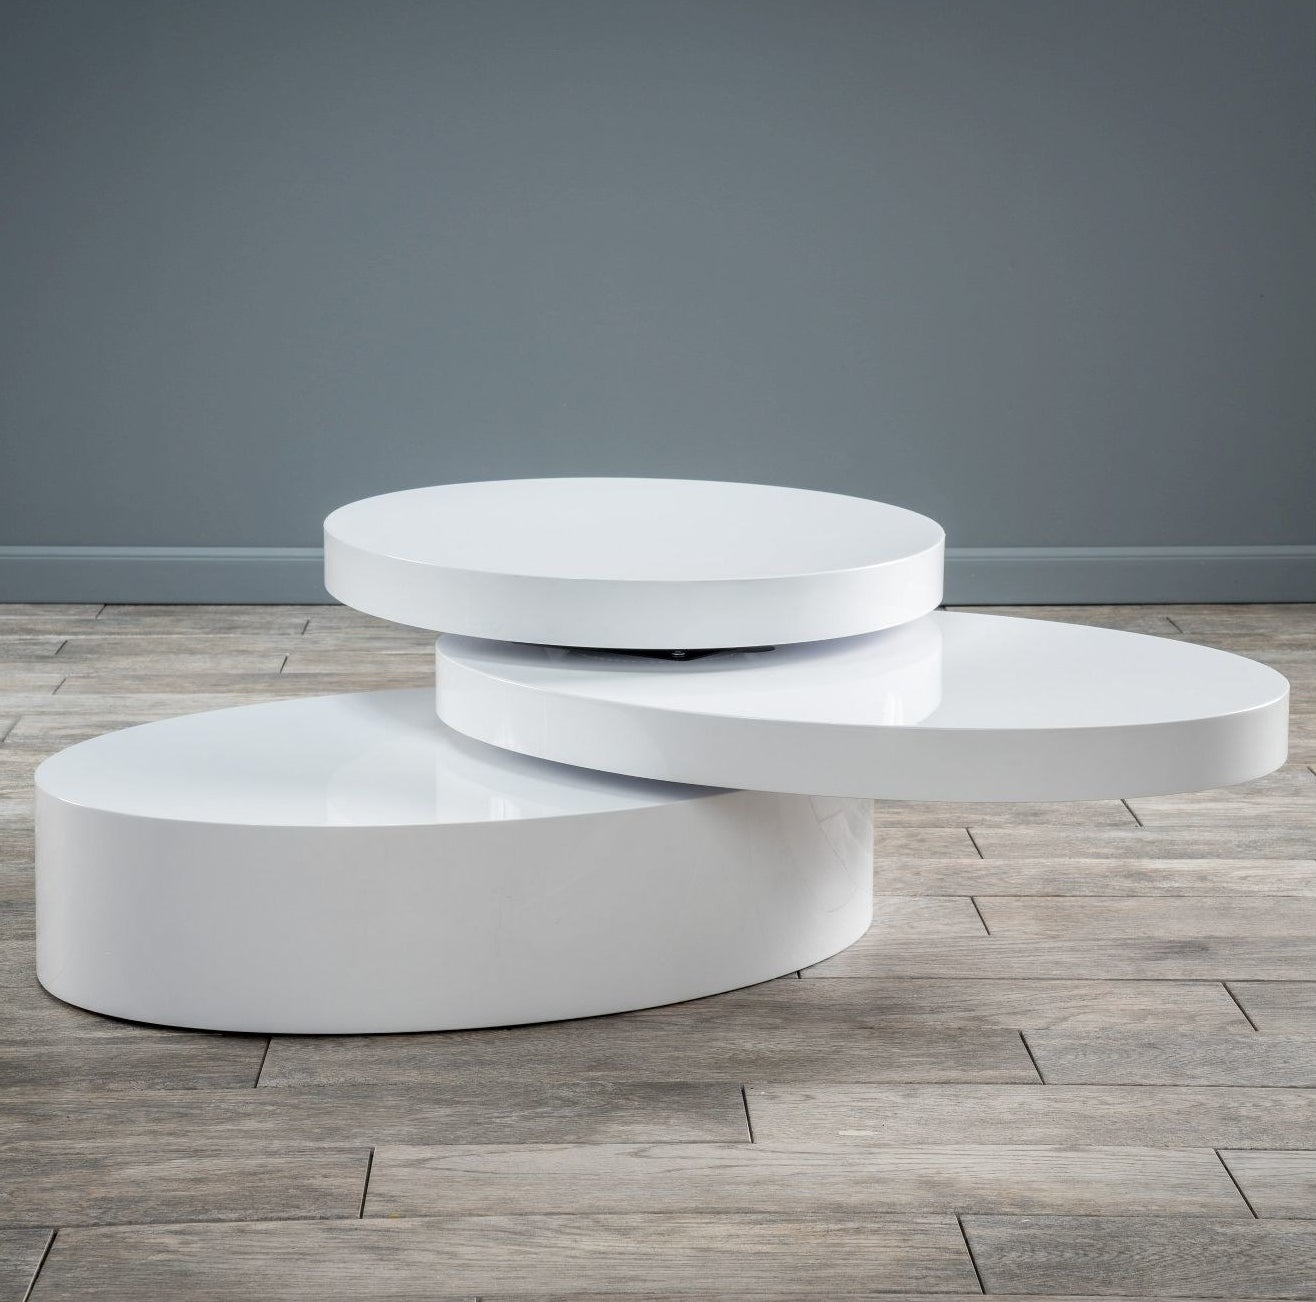 a round table with three layers that are rotatable